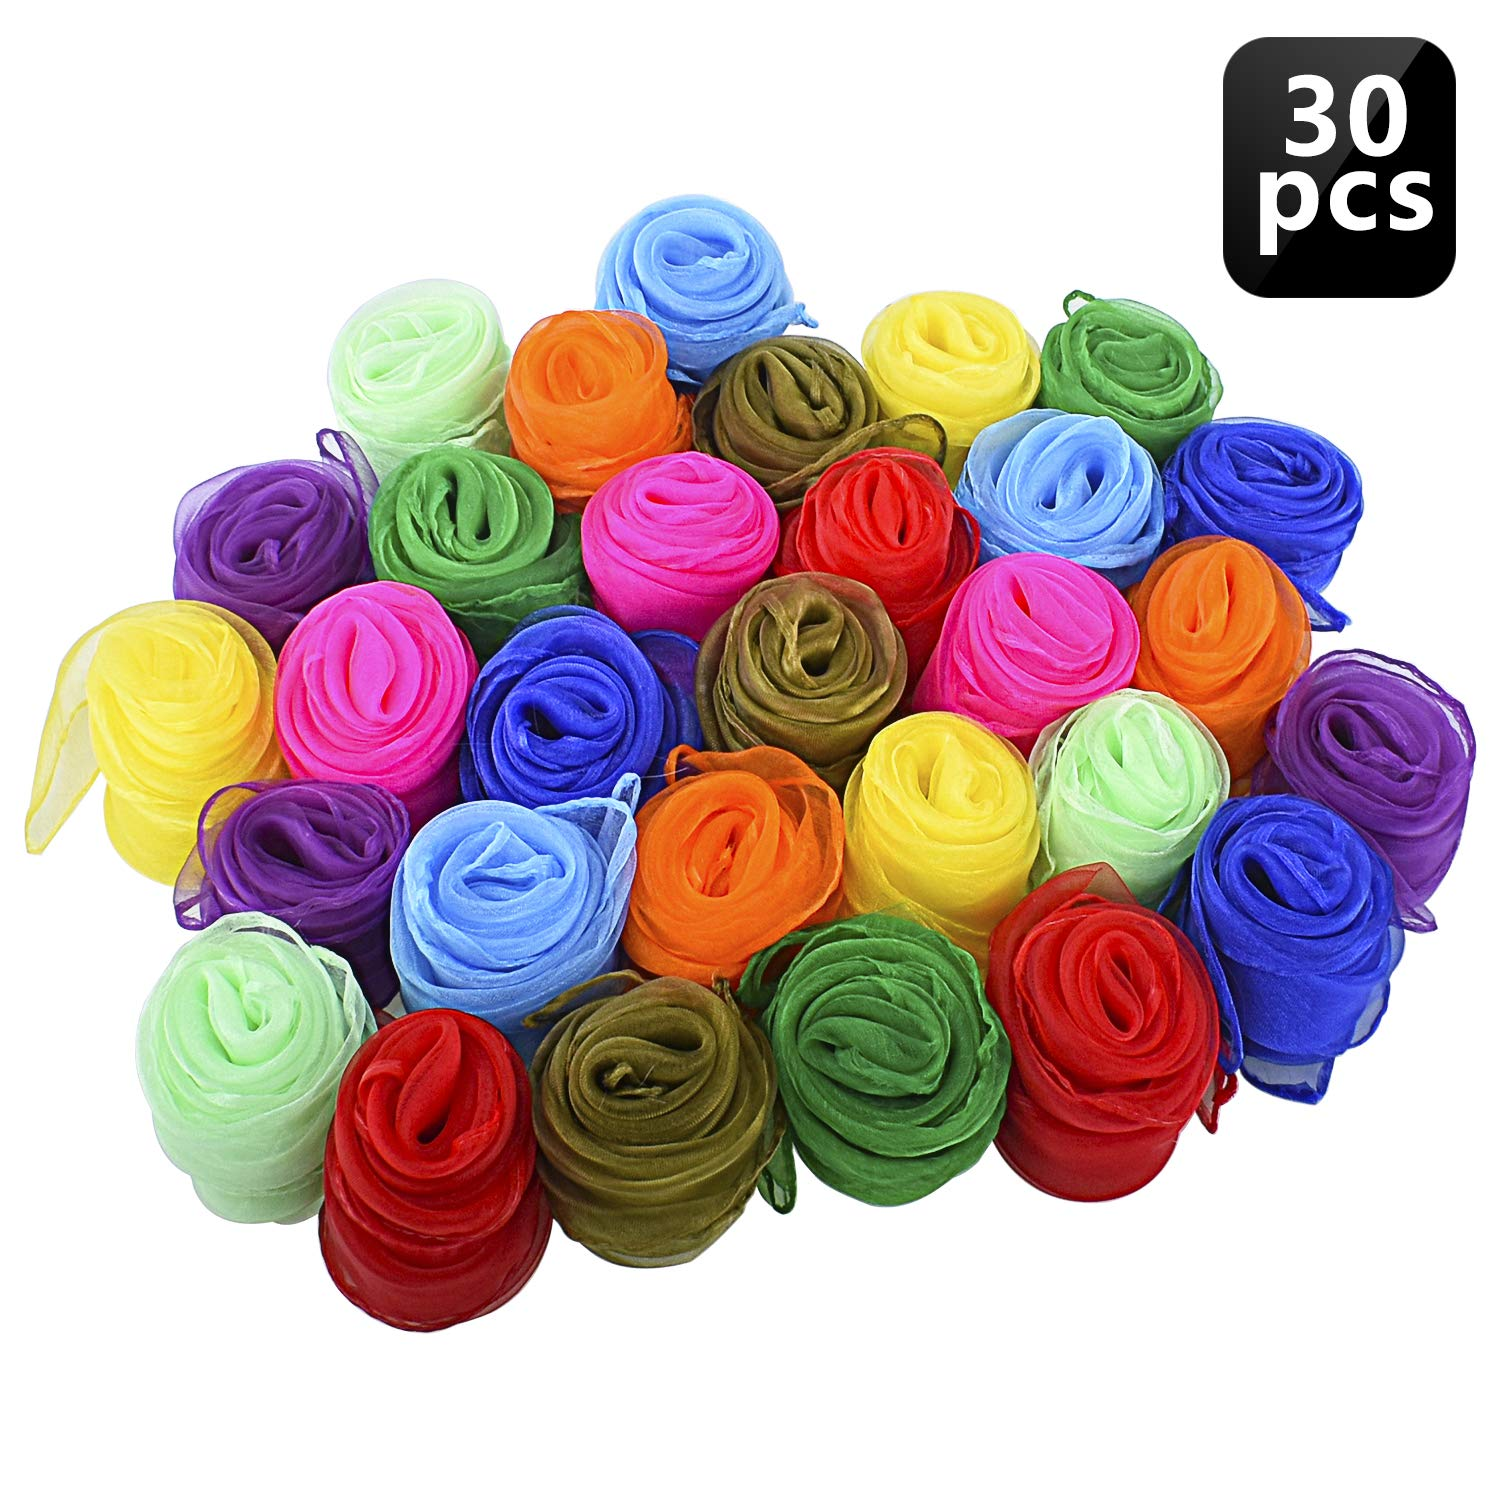 Blovec Juggling Silk Scarves, 30 pcs Square Dance Scarf Magic Movement Scarves Performance Props Accessories 24 by 24 Inch in 10 Colors by Blovec